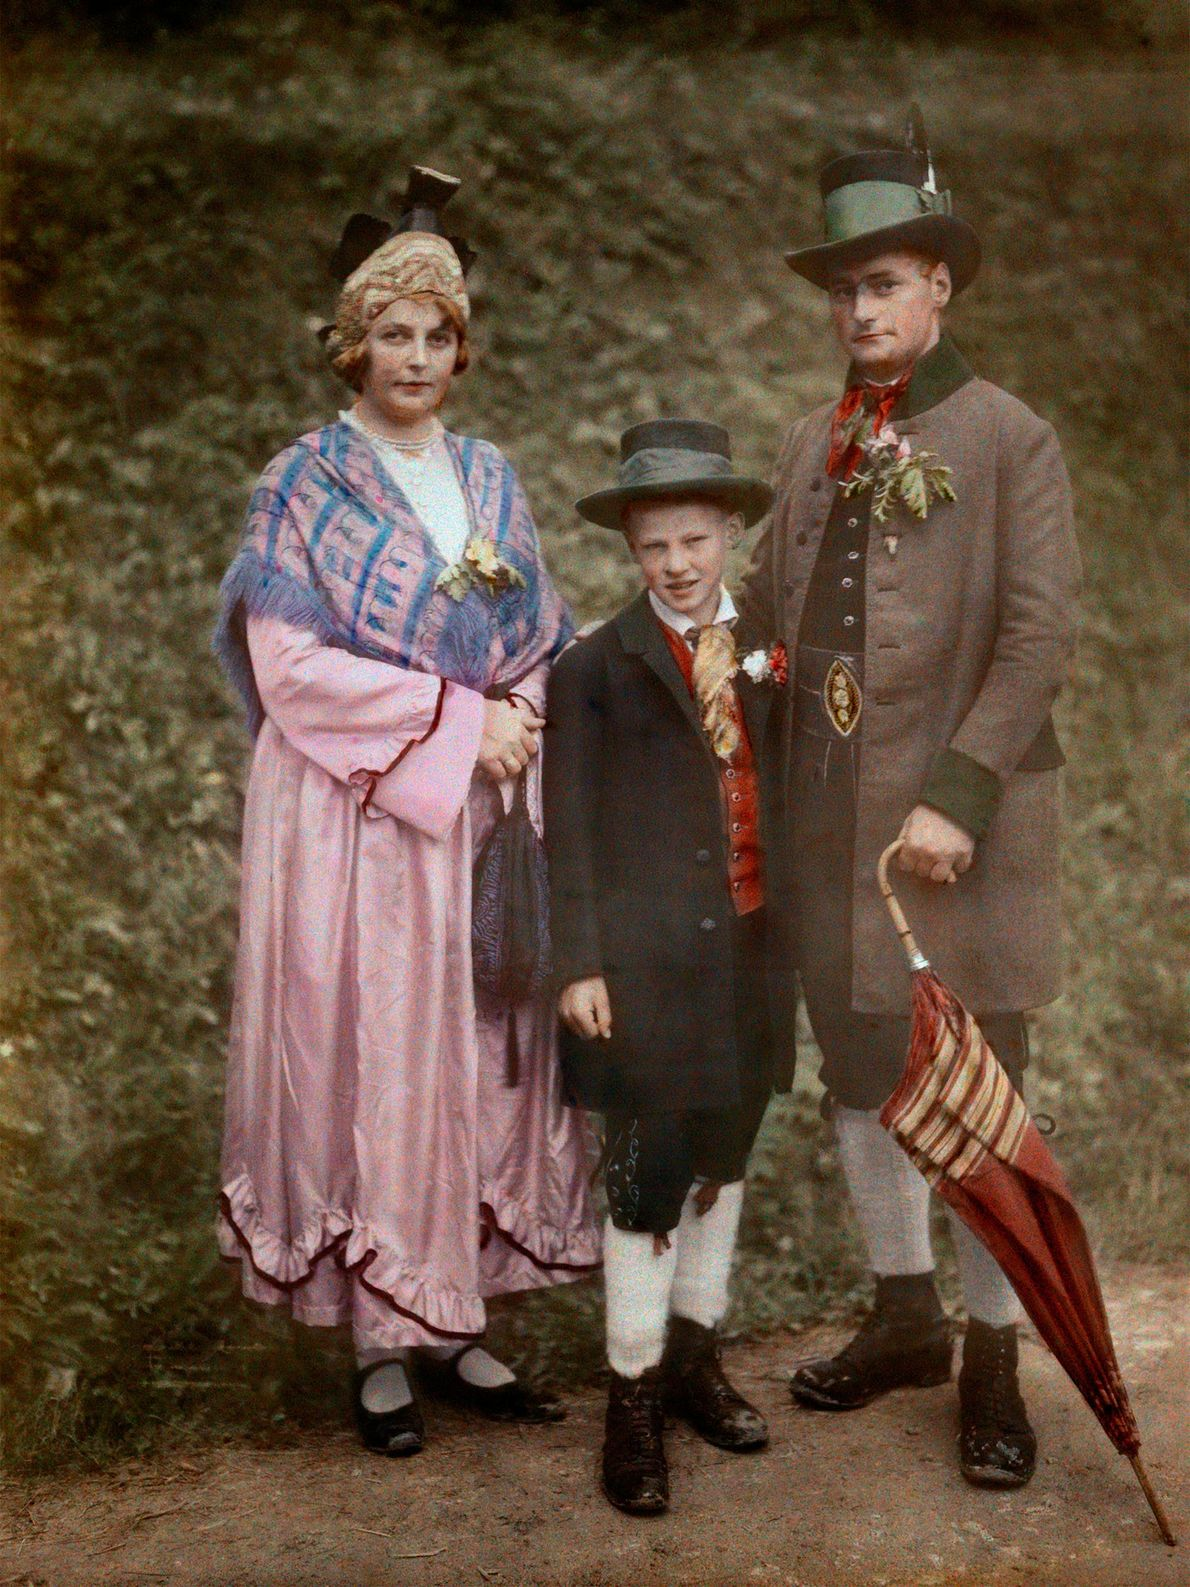 An Austrian family in the early 1900s wears clothing reflective of the era of Archduke Johann, ...